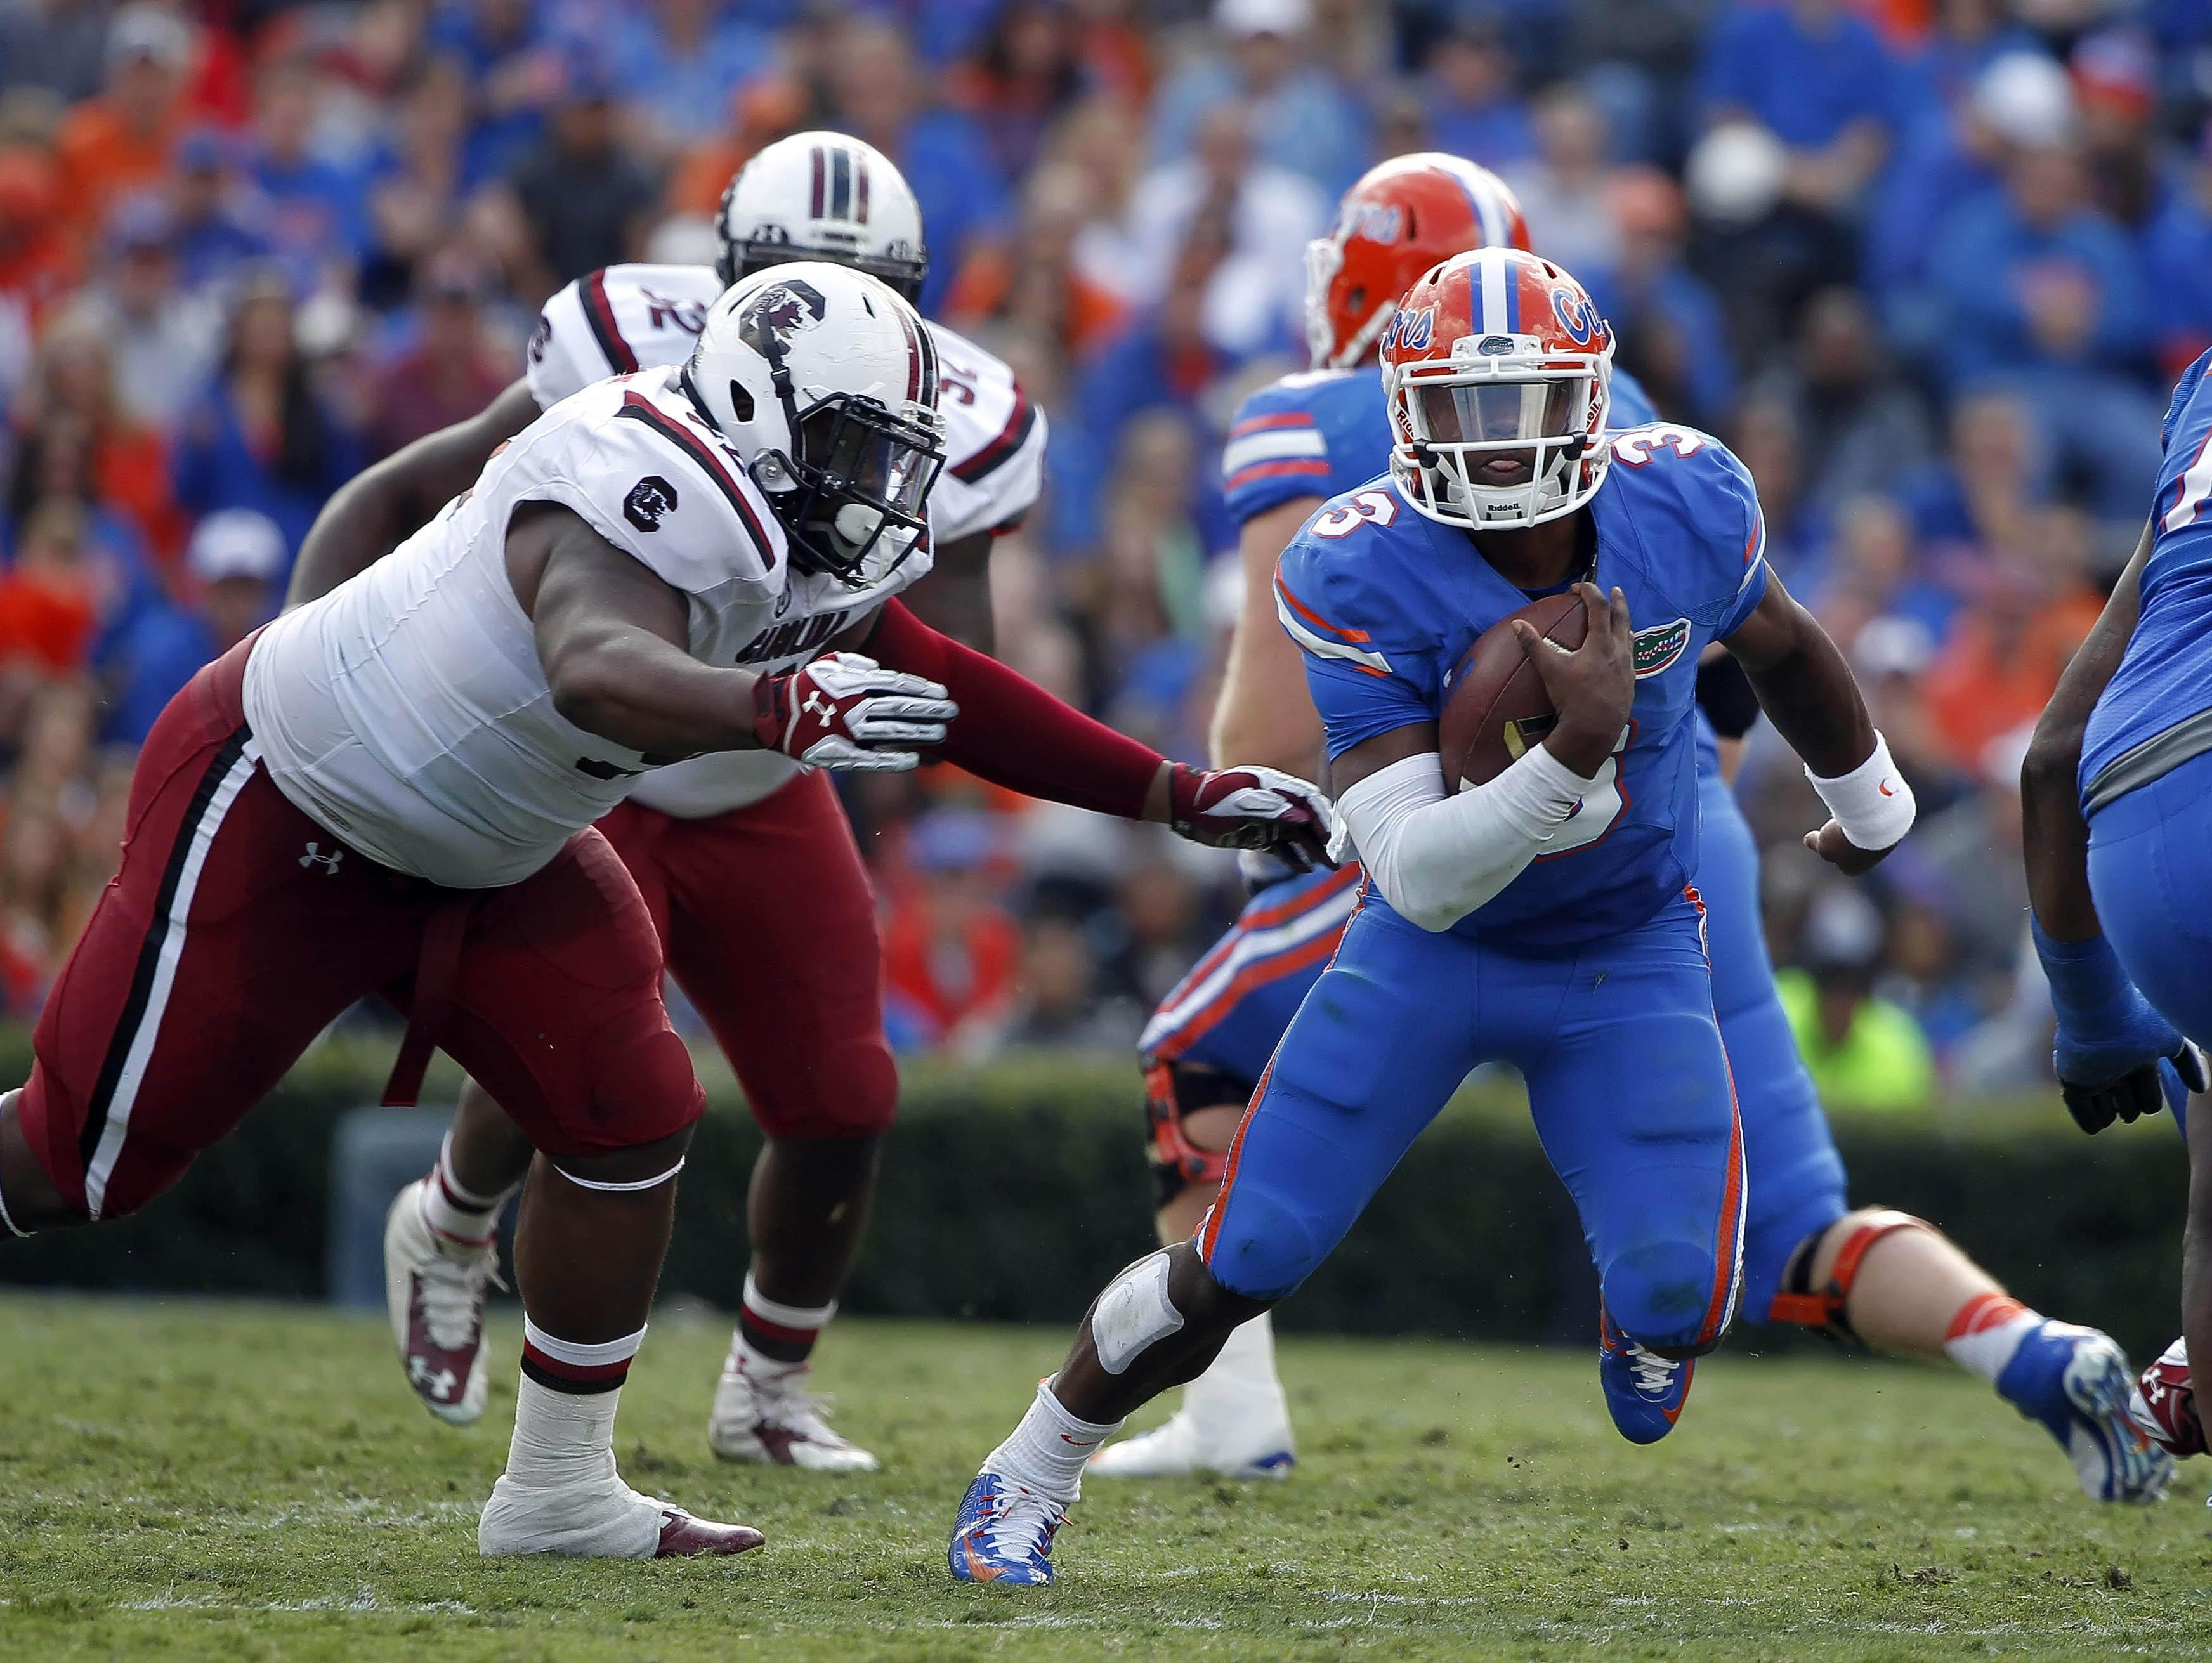 USC defensive tackle Gerald Dixon Jr., right, shown in a 2014 game against Florida, says the team will feature a defensive line with better conditioning and chemistry when it opens Sept. 3 against North Carolina.